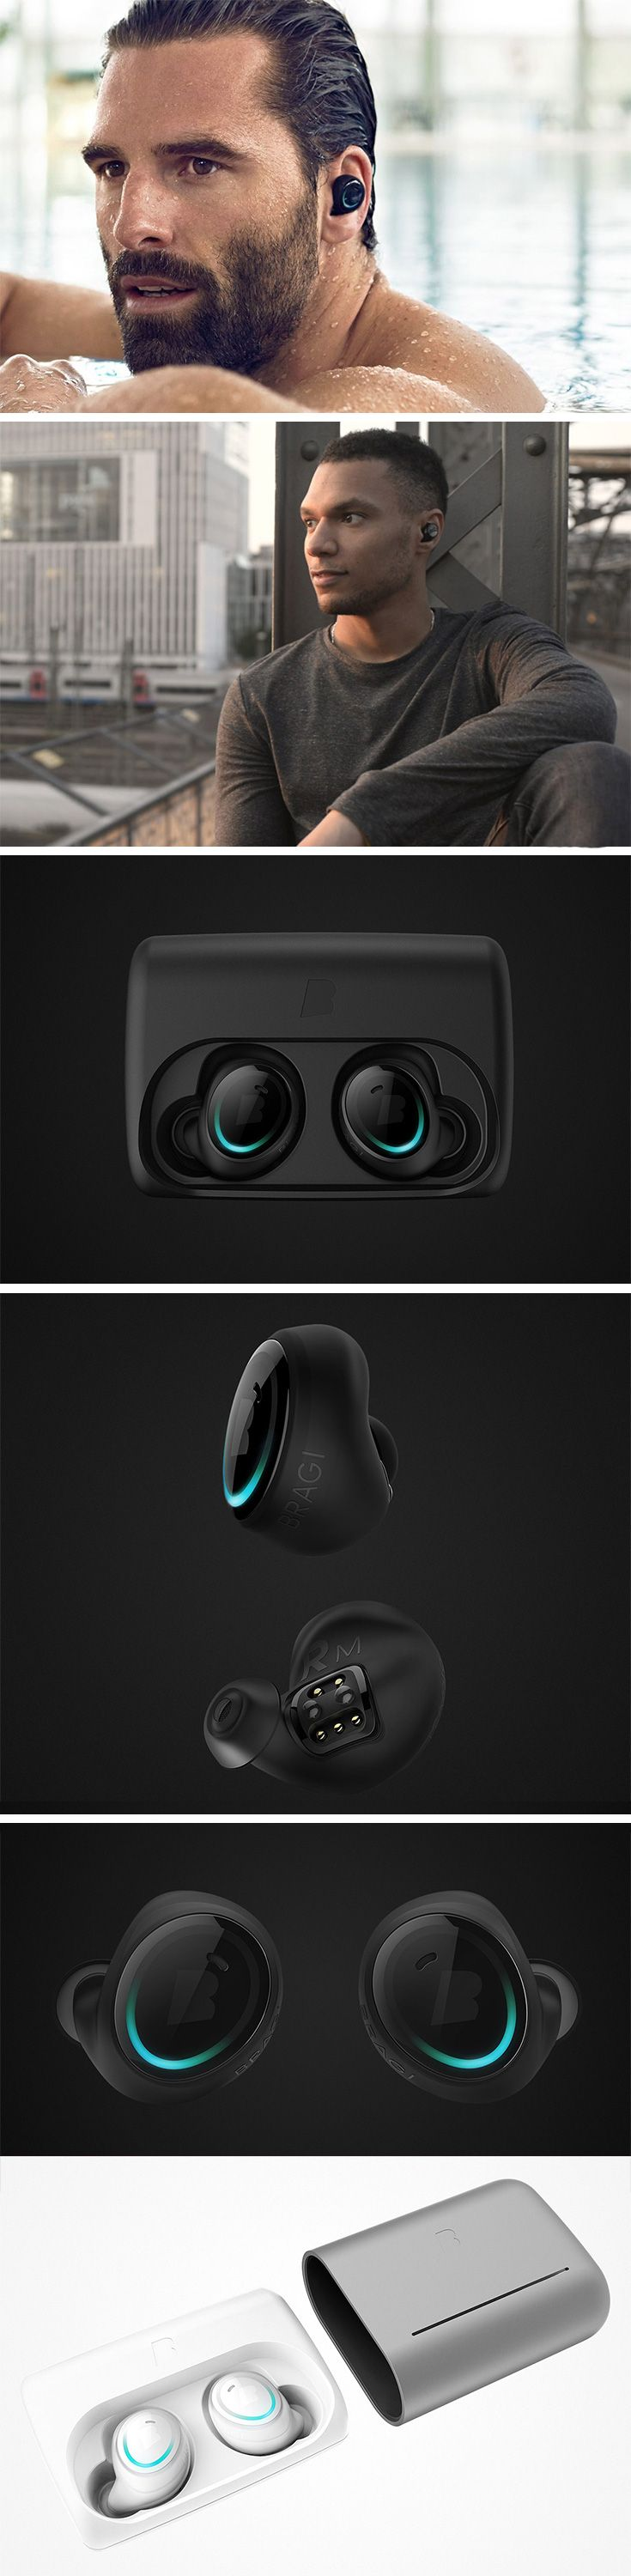 The Dash combines 3 essential features in 1 product: music, fitness tracking, and communication. You can run, dance, swim and talk all without taking them out. Unless you're syncing or charging, there's almost no reason to take them out! Better yet, you can use them with any device, Apple or Android! BUY NOW!